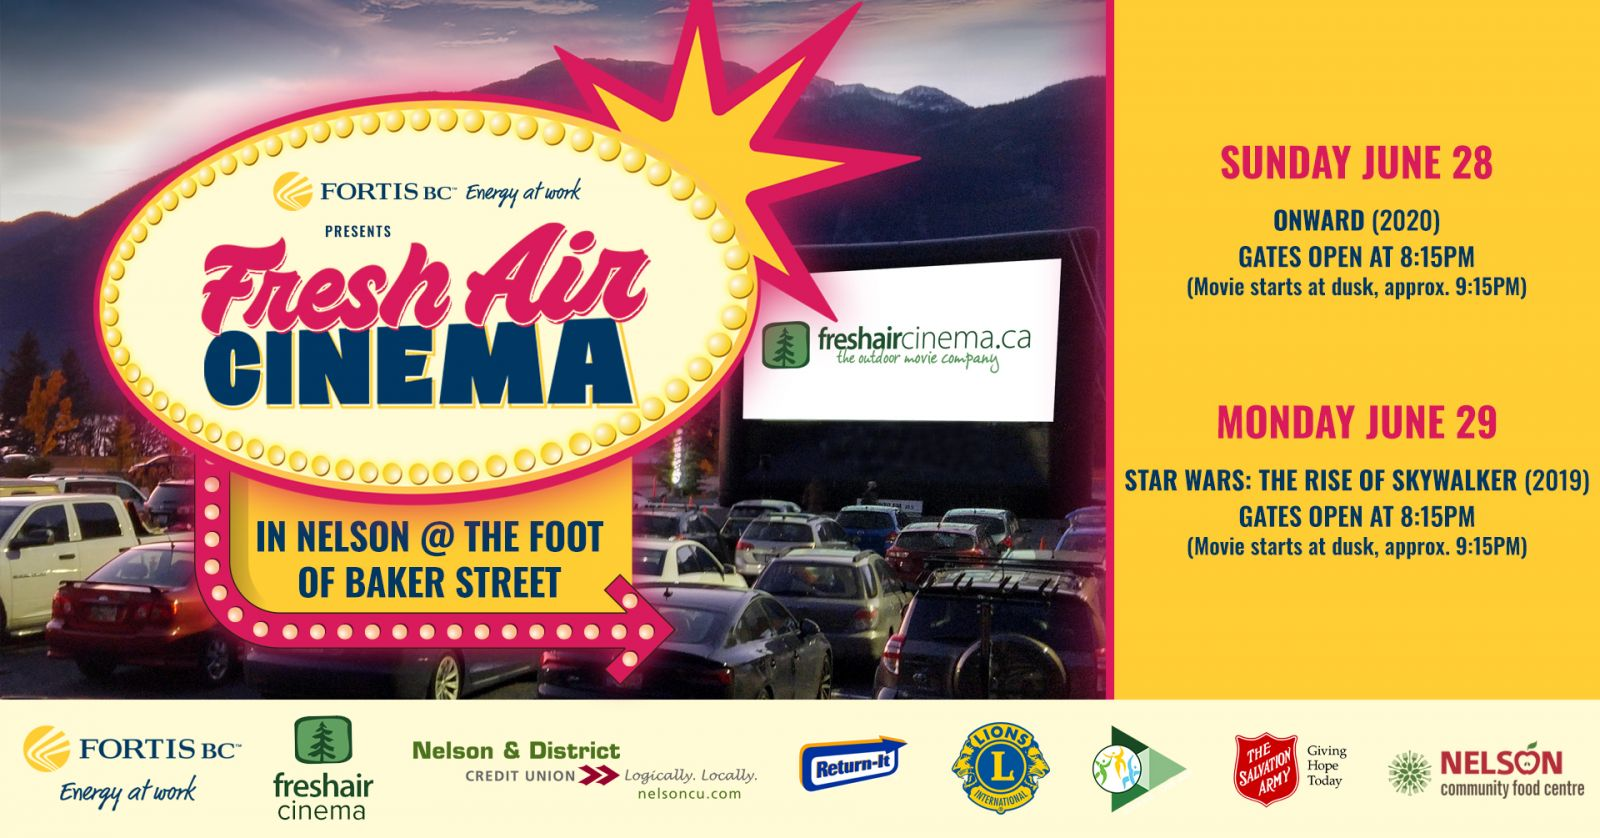 Nelson Lions, with Fresh Air Cinema & Fortis bring Onward and Star Wars to Nelson